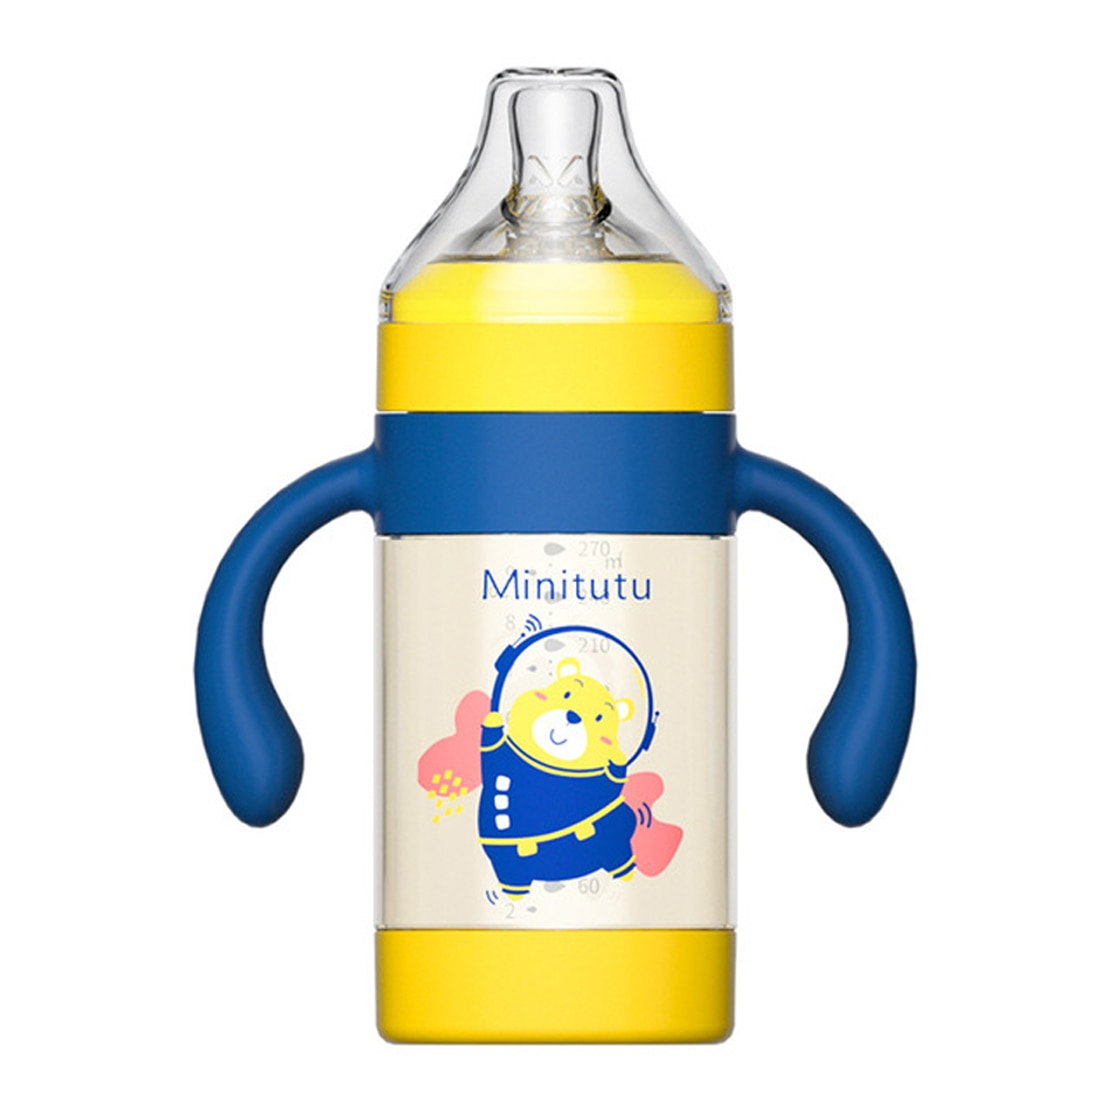 Baby bottle PPSU anti-fall and anti-colic 300ml large capacity one and a half year old polypropylene, silicone